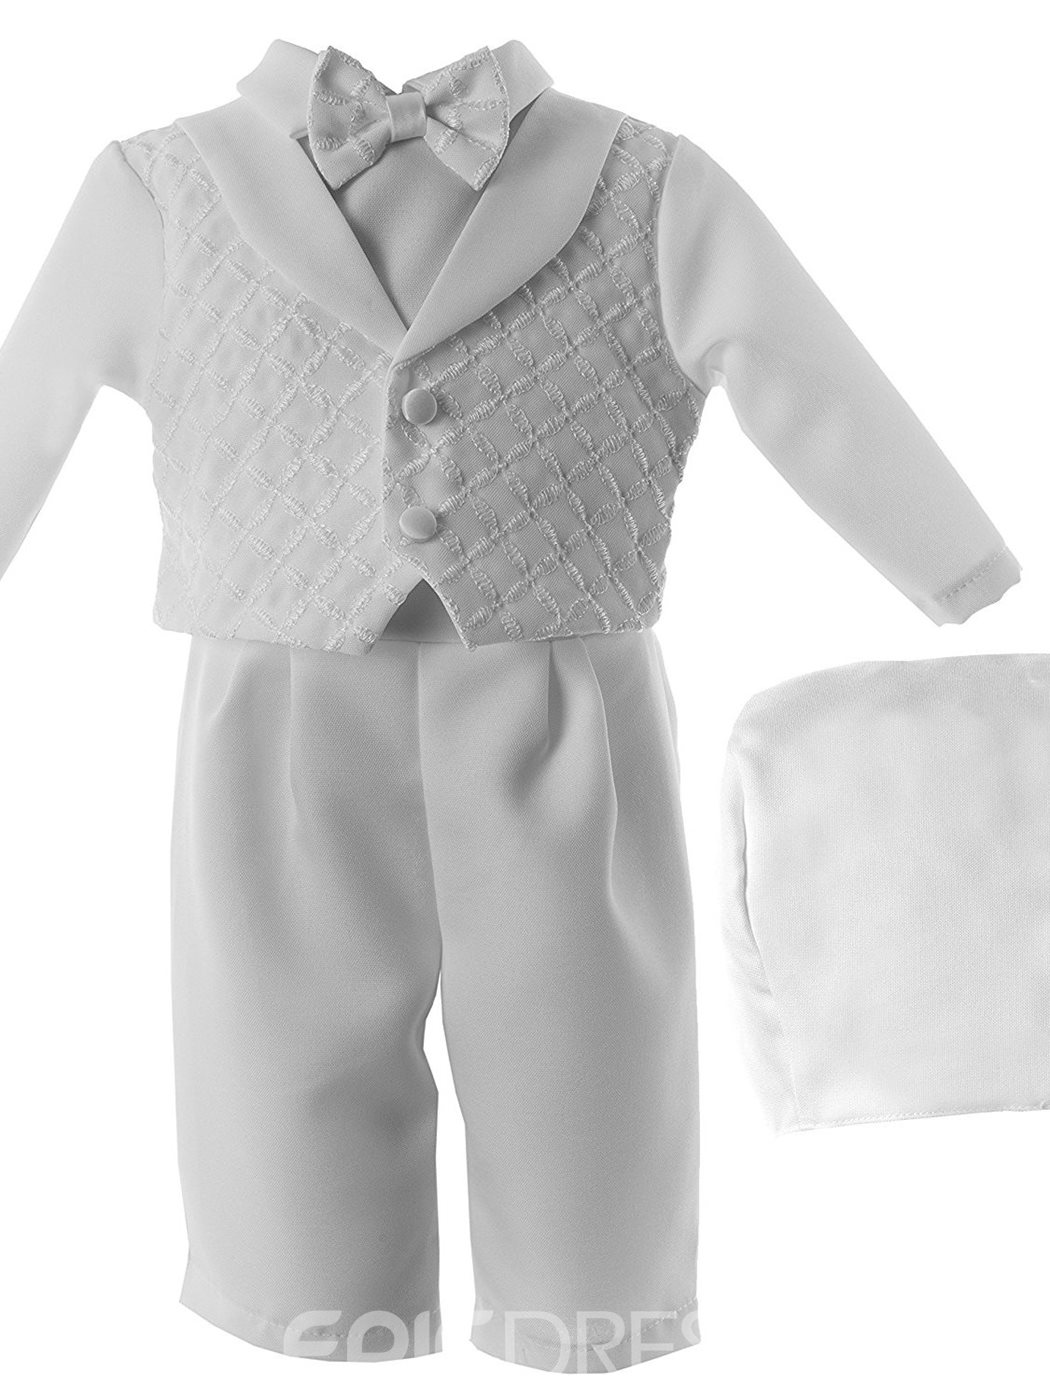 Ericdress 3 Pieces Baby Boy's Christening Gown with Headpiece